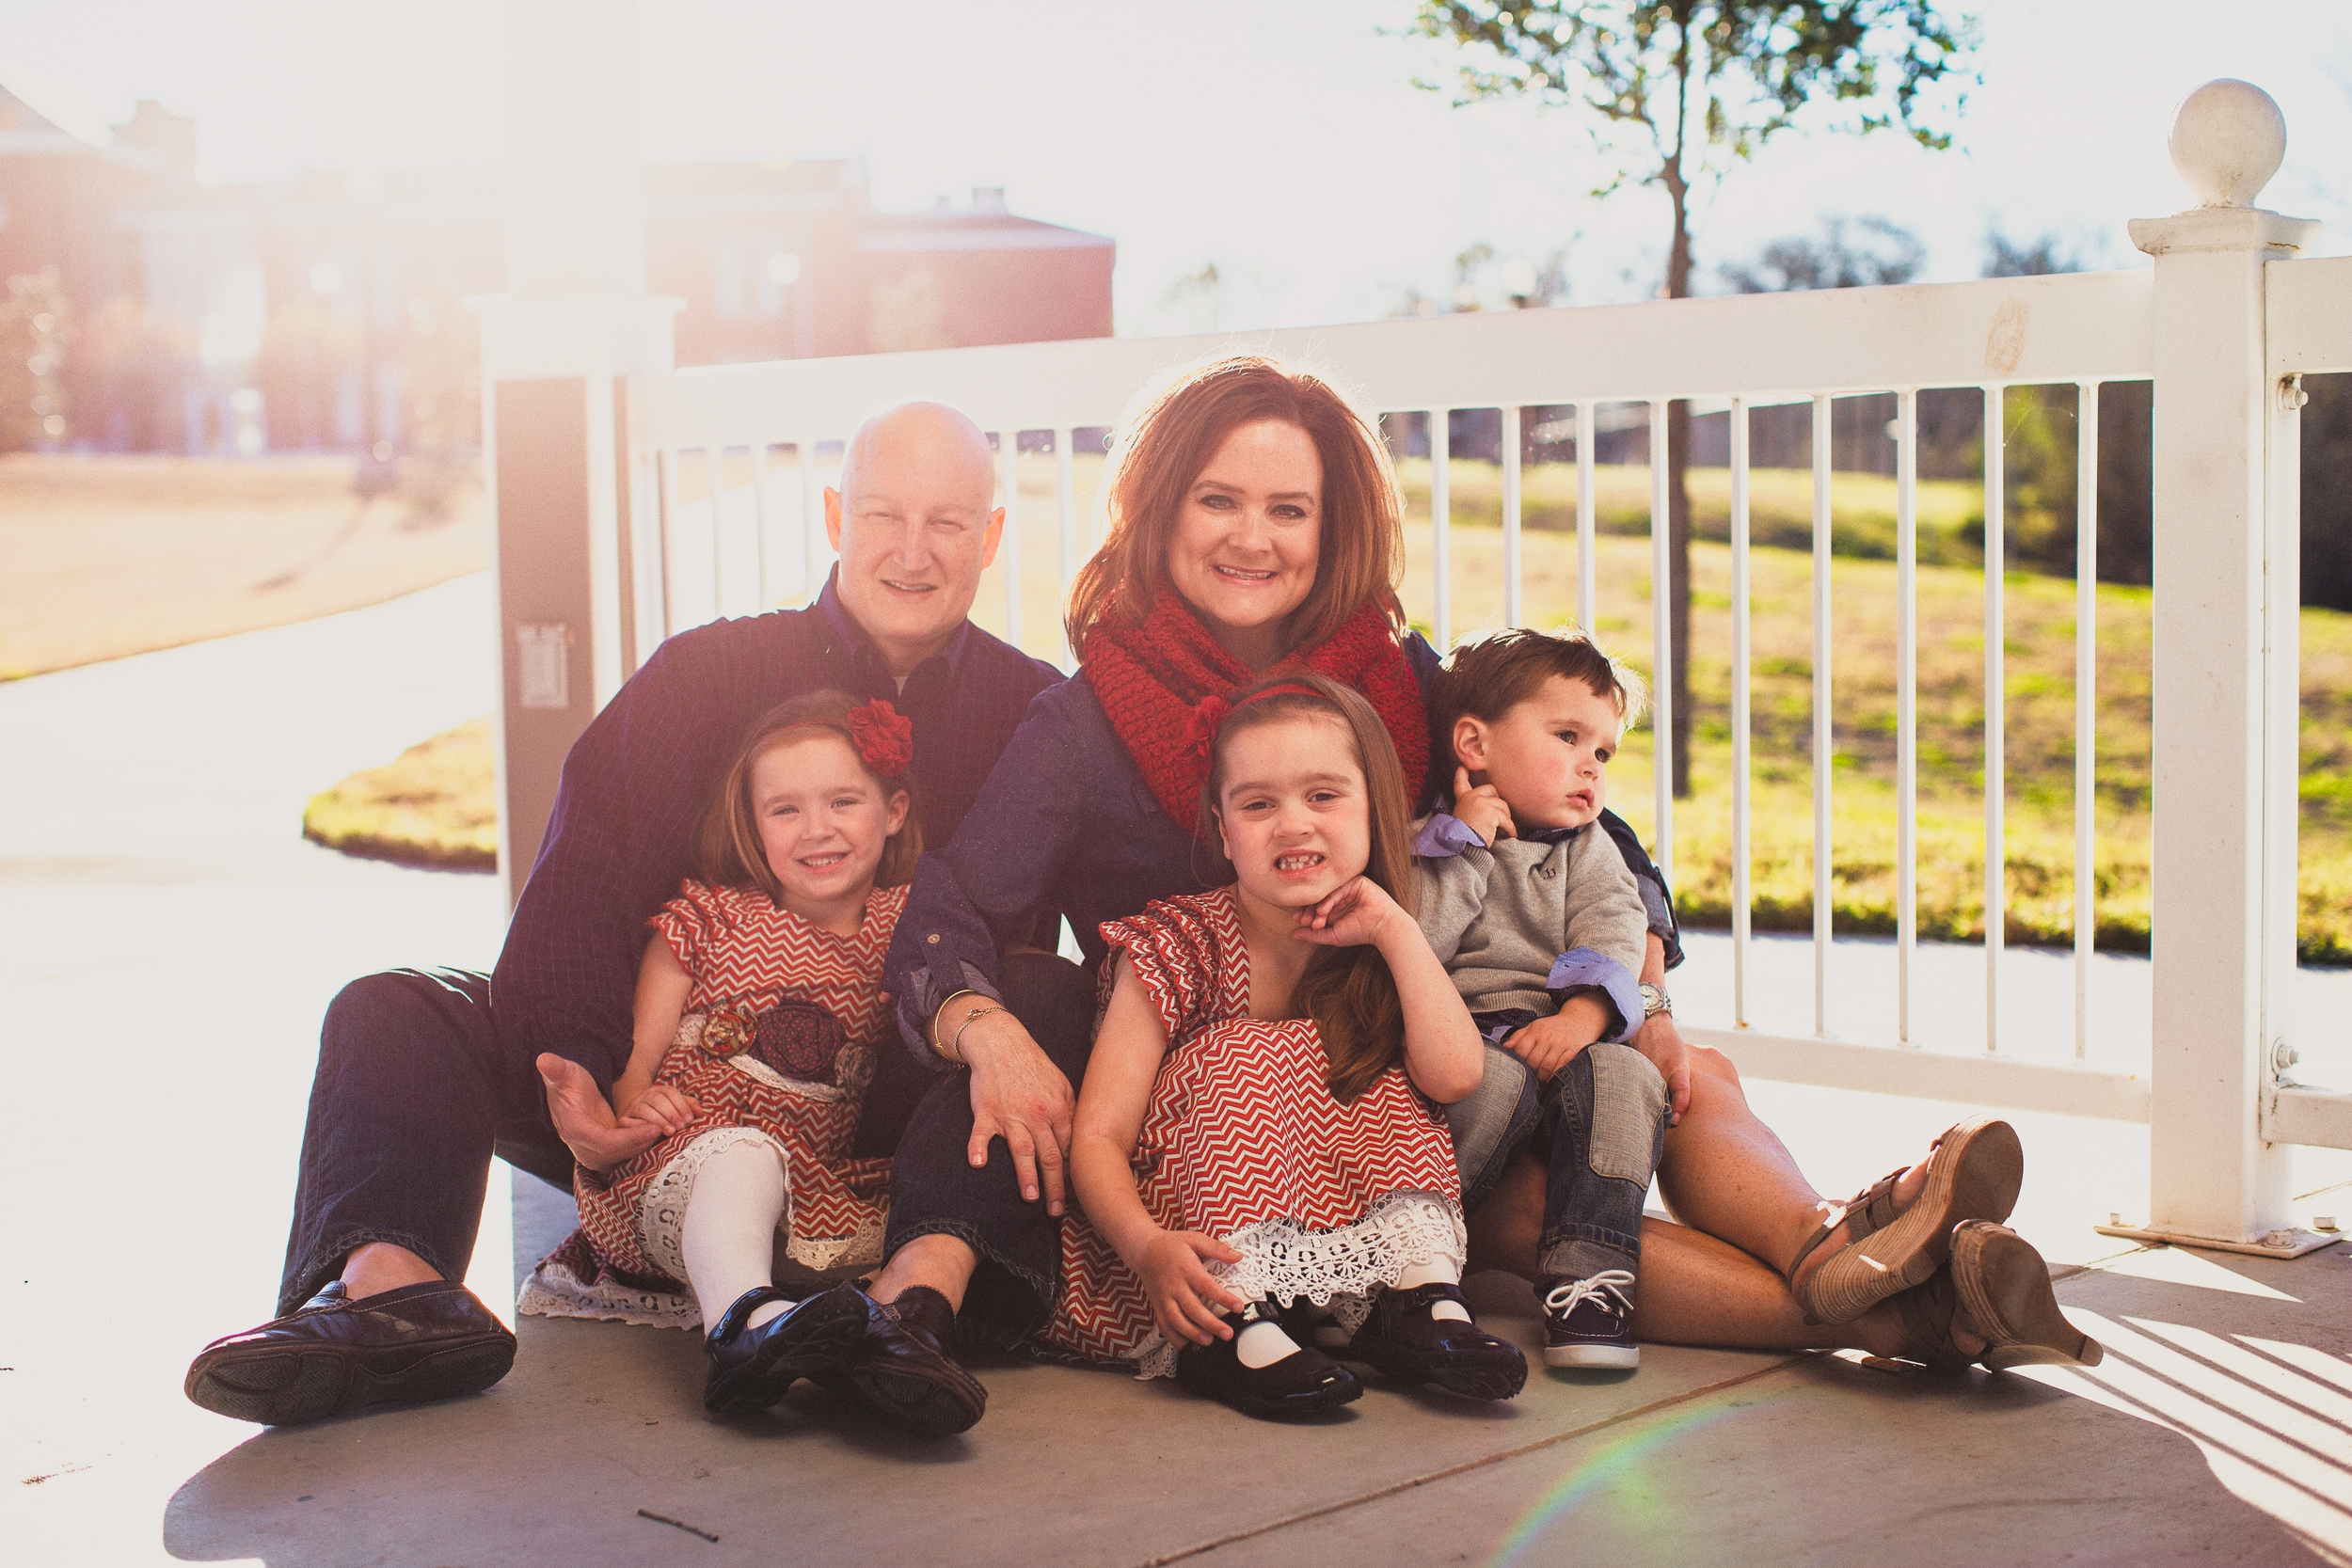 houstonfamilyphotographer_h2015_brimberry-71-final.jpg